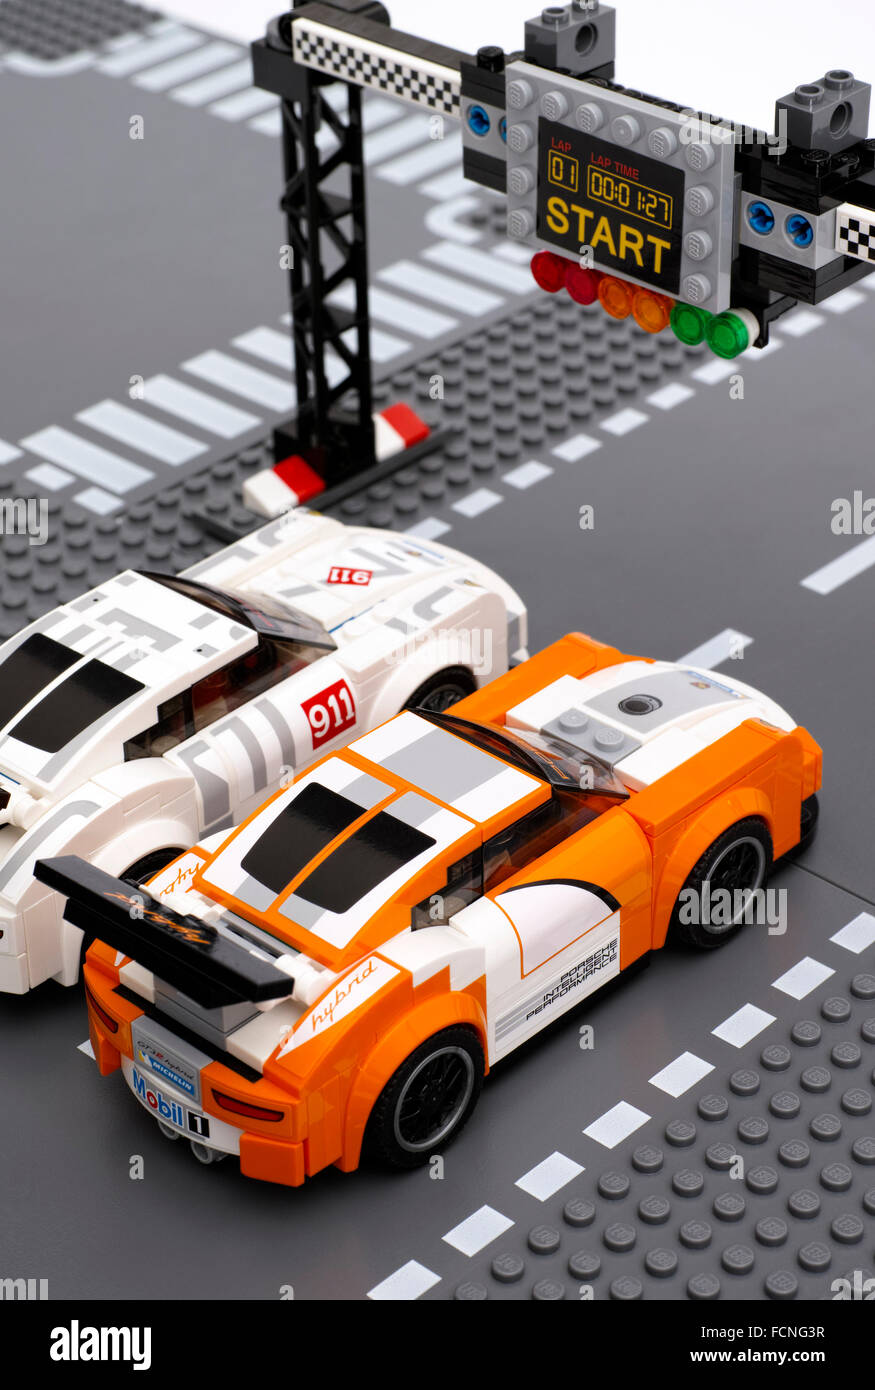 tambov russian federation june 27 2015 two lego porsche 911 gt stock photo royalty free. Black Bedroom Furniture Sets. Home Design Ideas